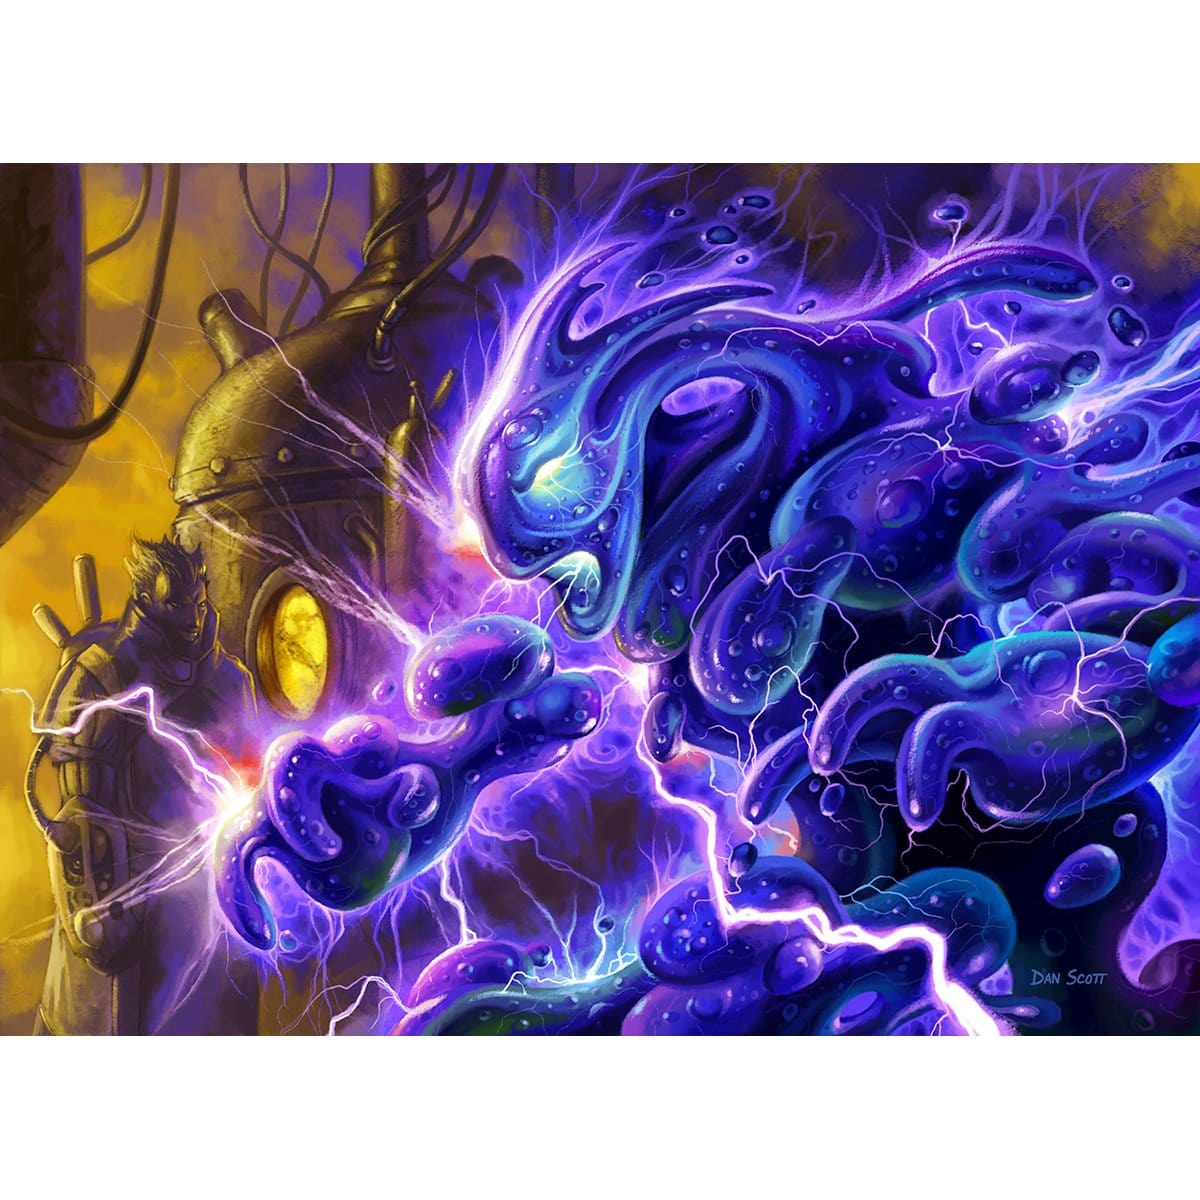 Gelectrode Print - Print - Original Magic Art - Accessories for Magic the Gathering and other card games